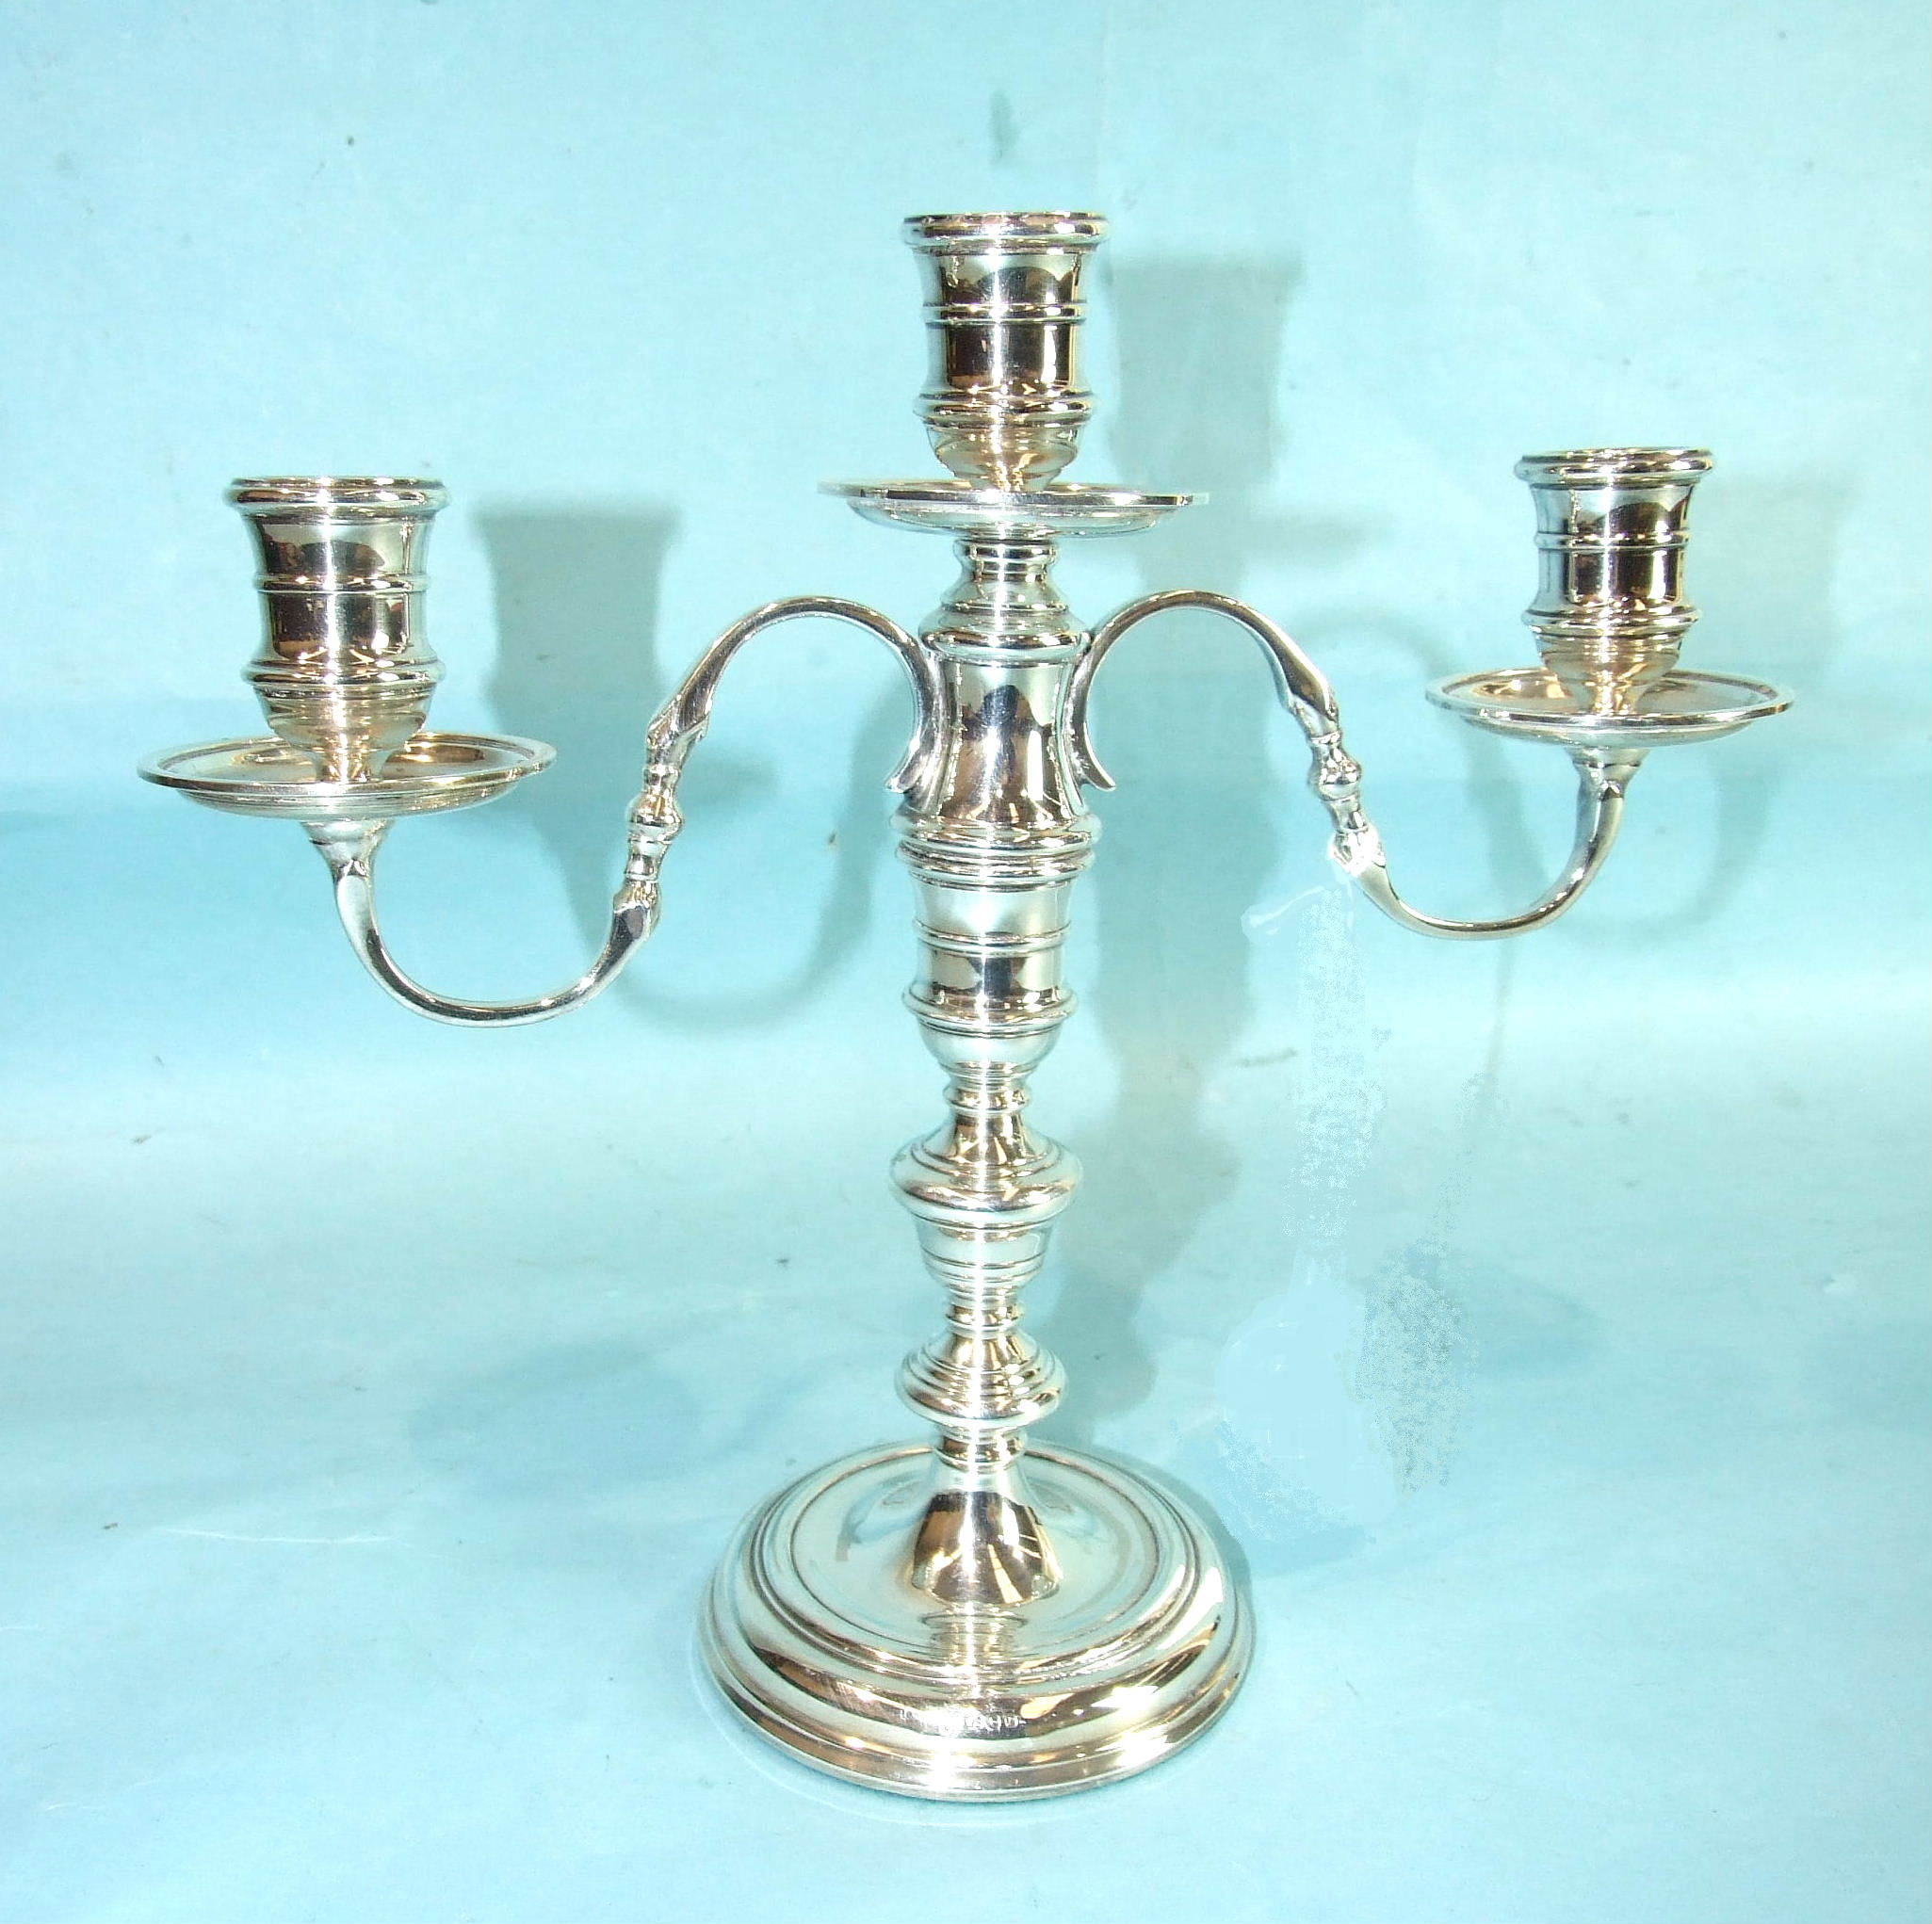 Lot 358 - A modern loaded table candelabrum with three sconces and turned stem, 25cm high, London 1972.